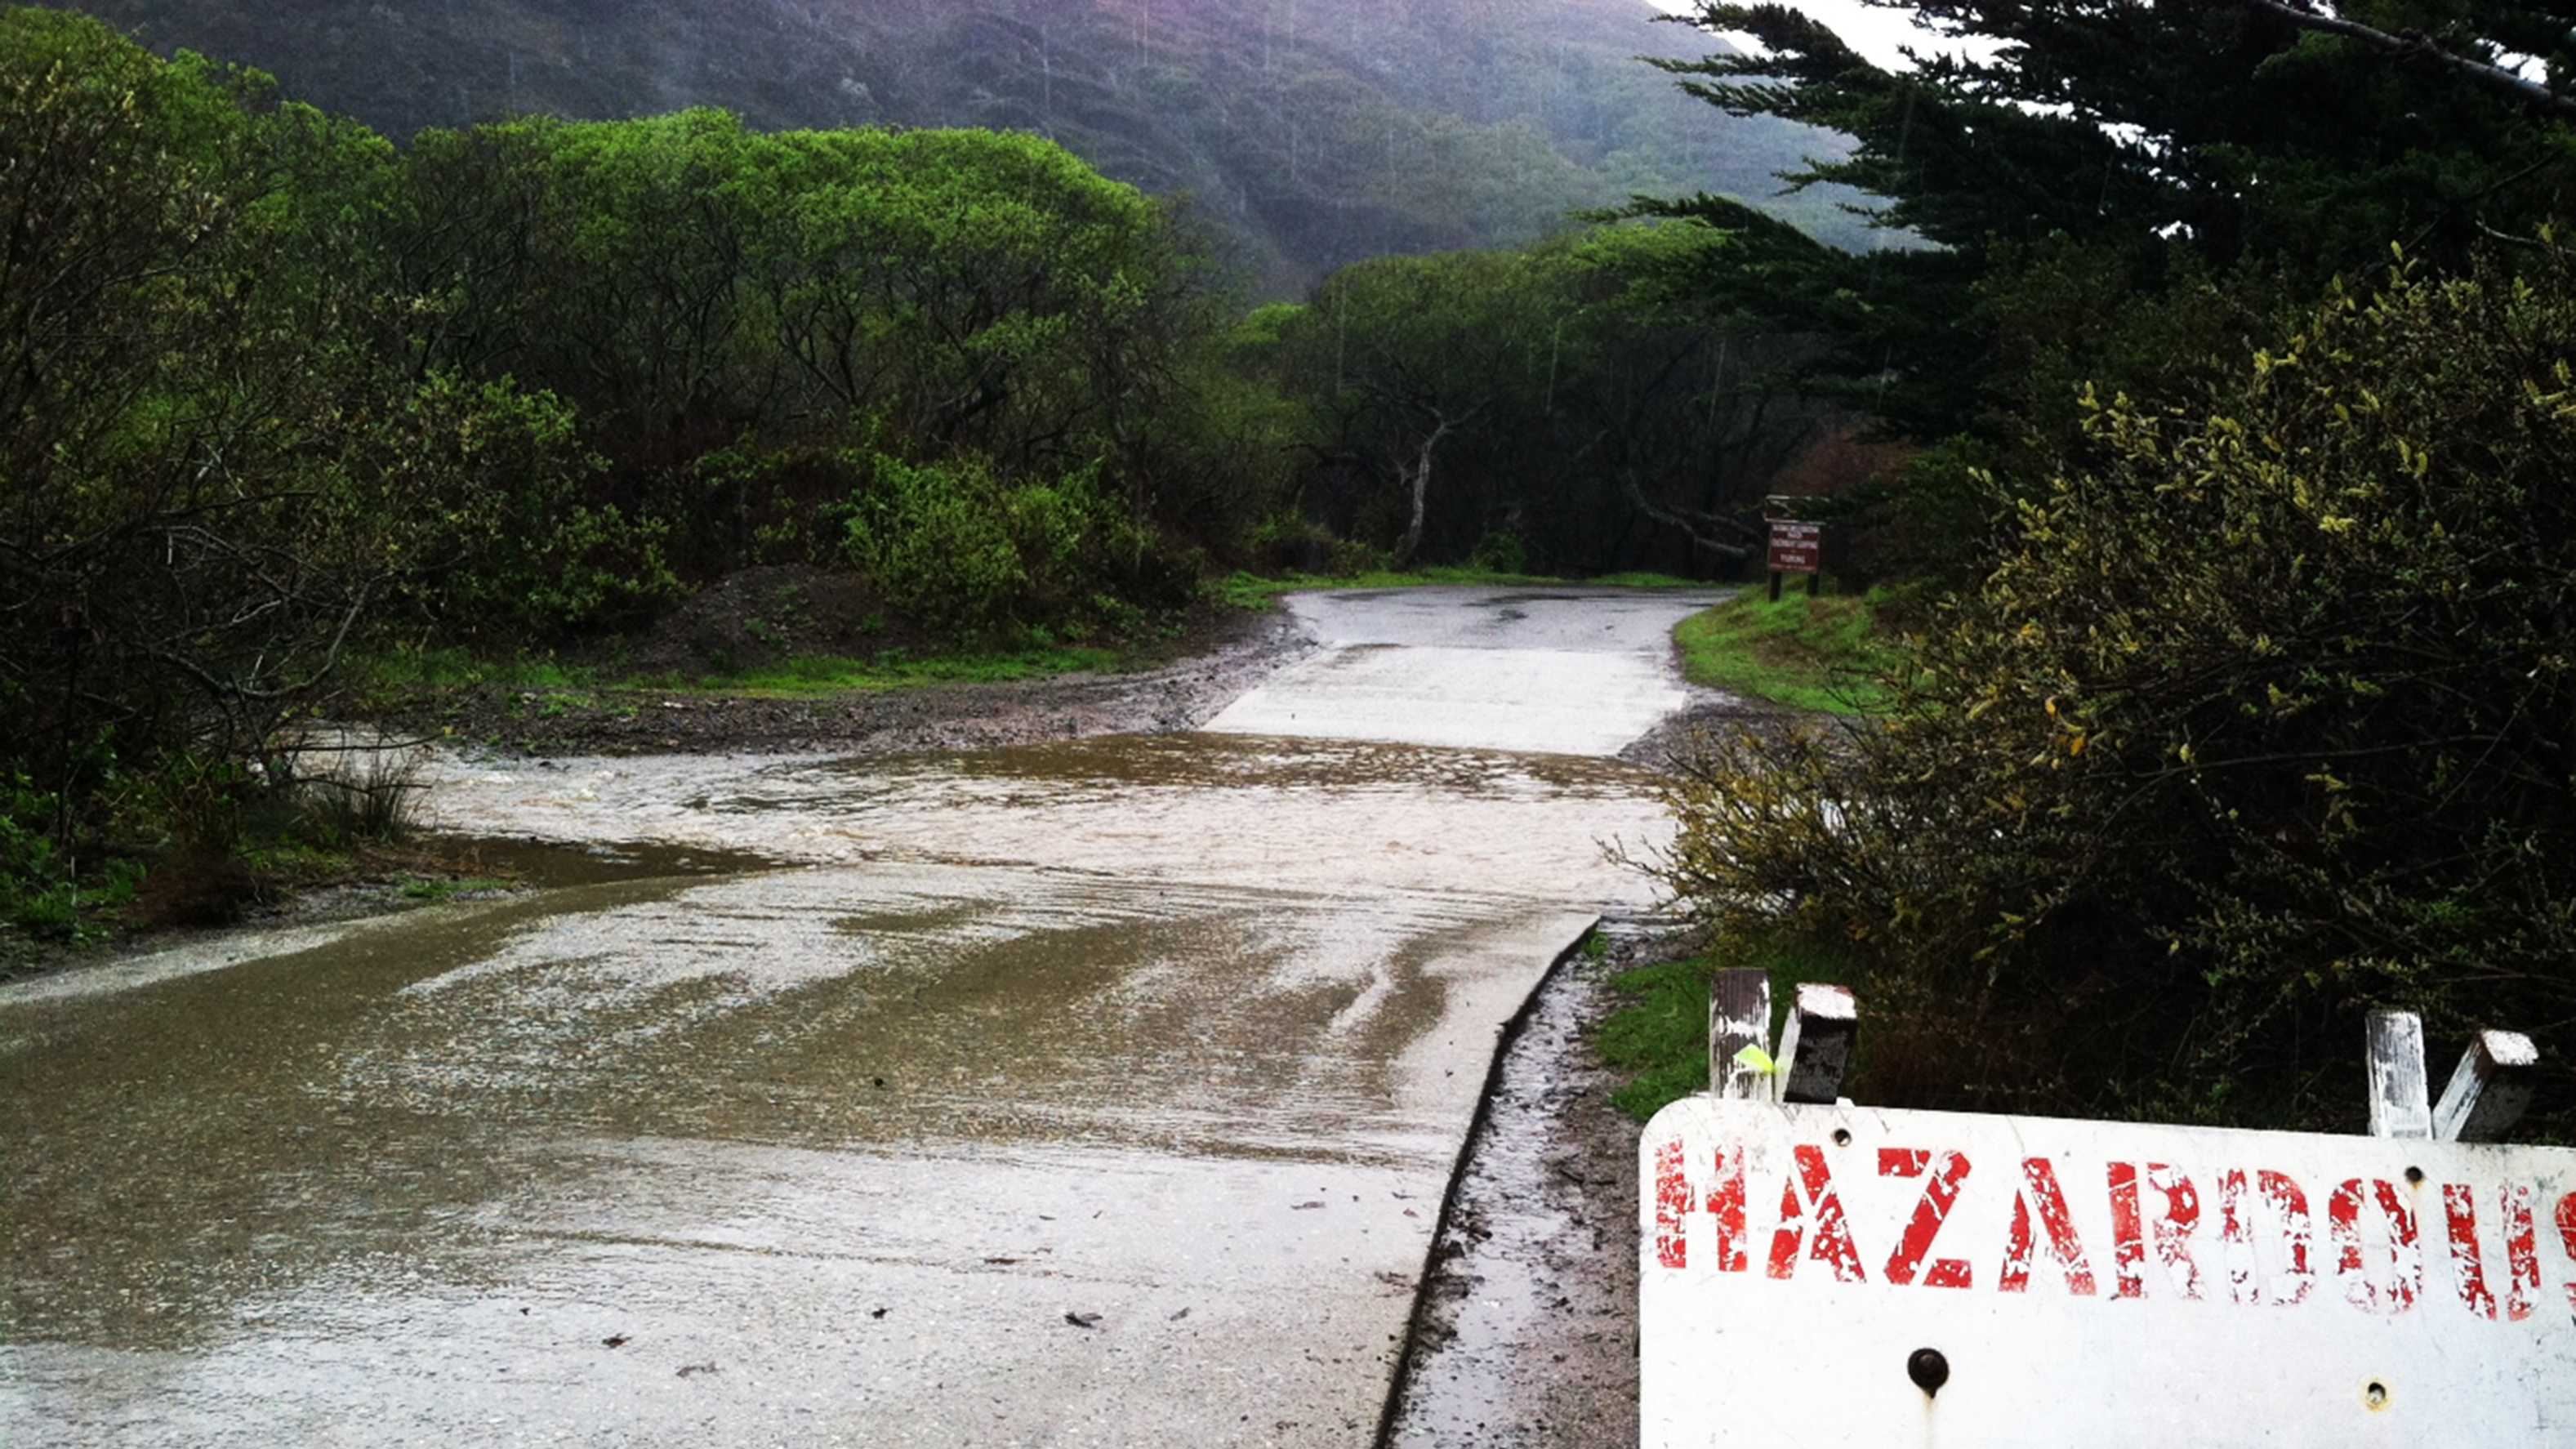 Sycamore Canyon Road in Big Sur was flooded Friday.